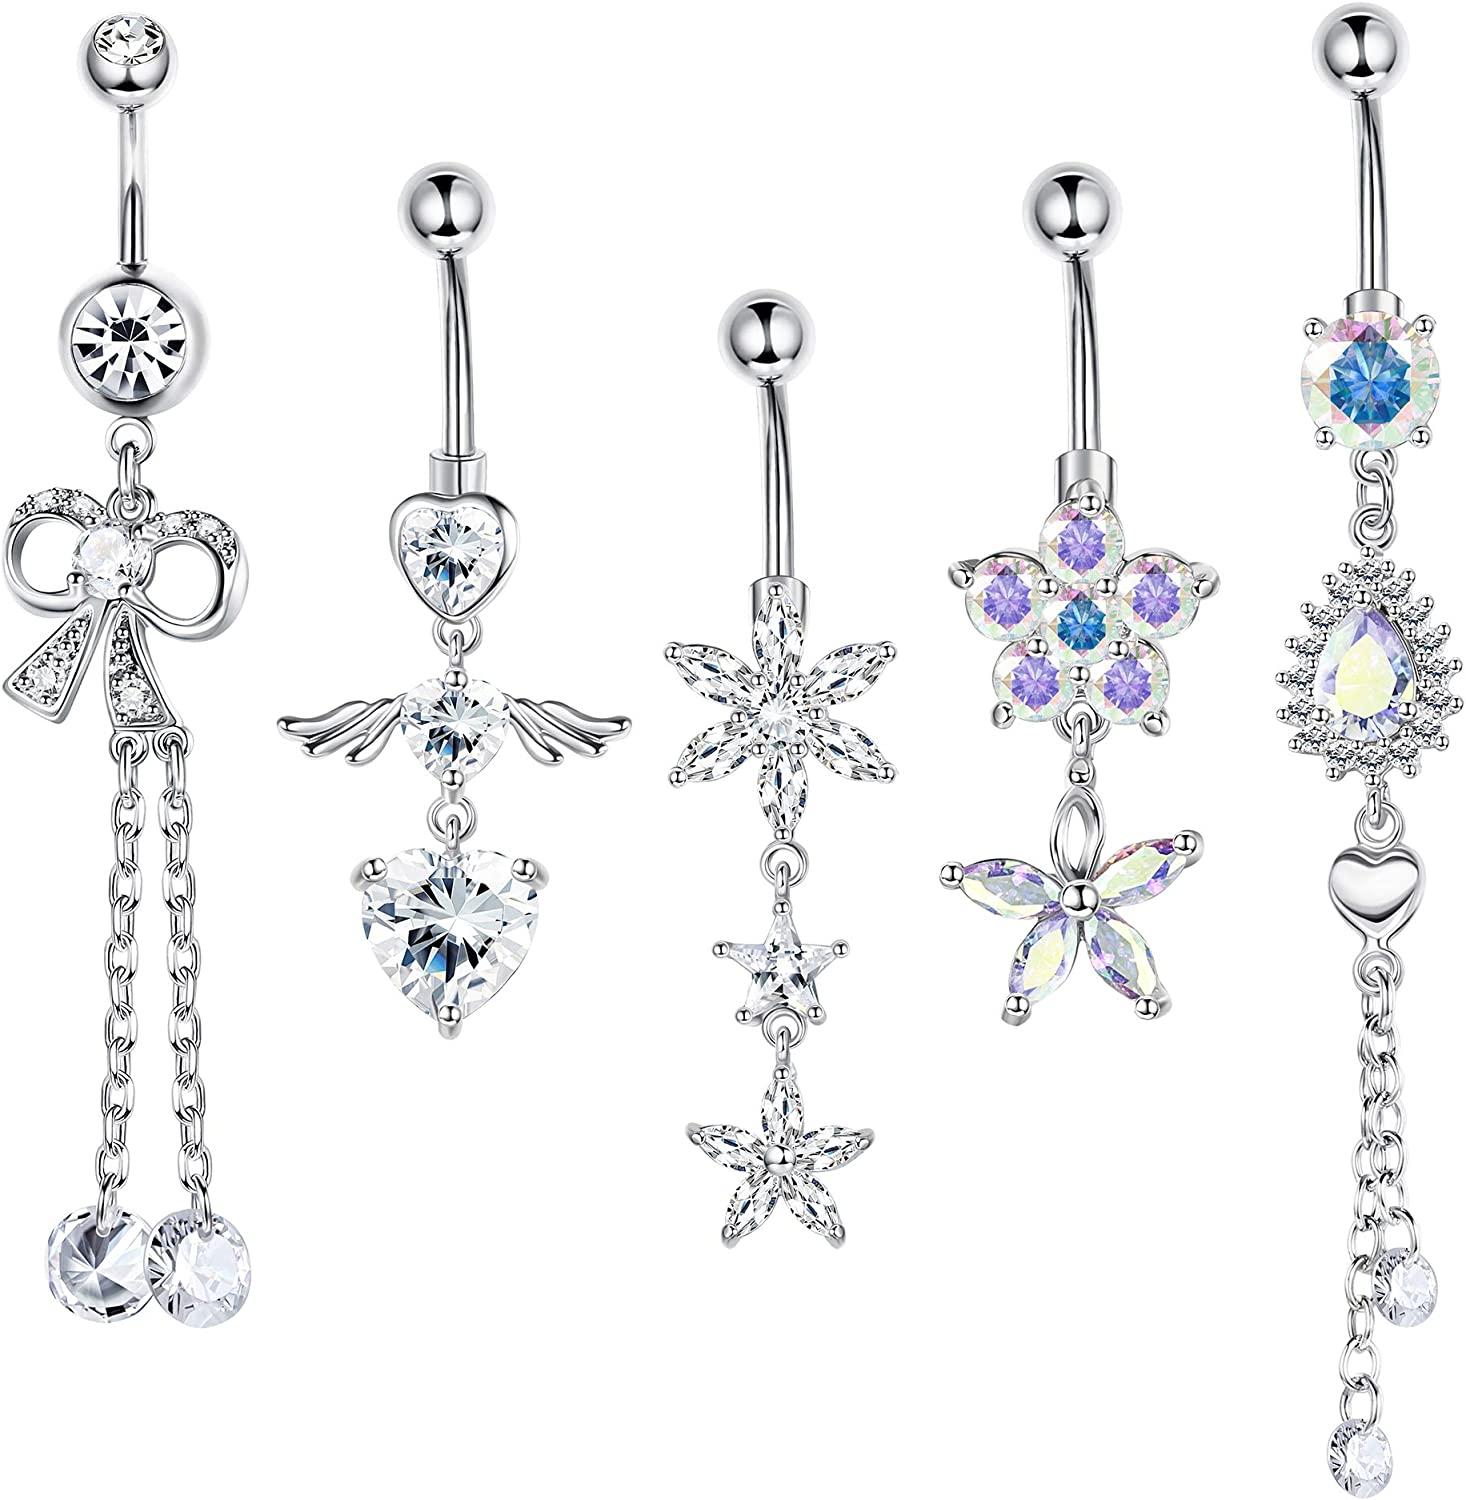 Udalyn 5 pcs 14g Dangle Belly Button Rings for Women Stainless Steel Curved Navel Barbell Body Jewelry Piercing